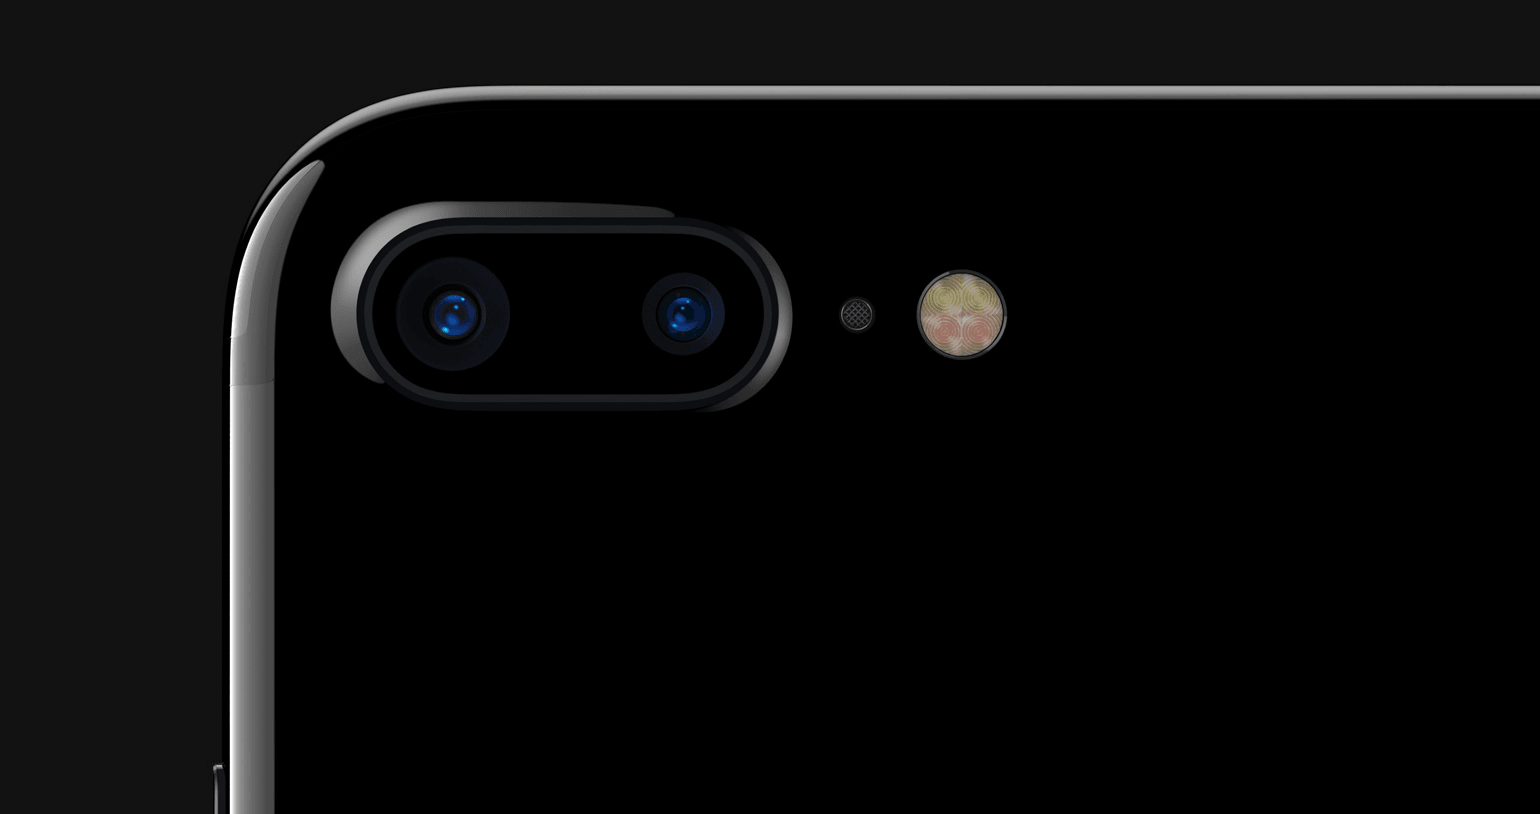 The iPhone 7 is a confession: Smartphones have peaked